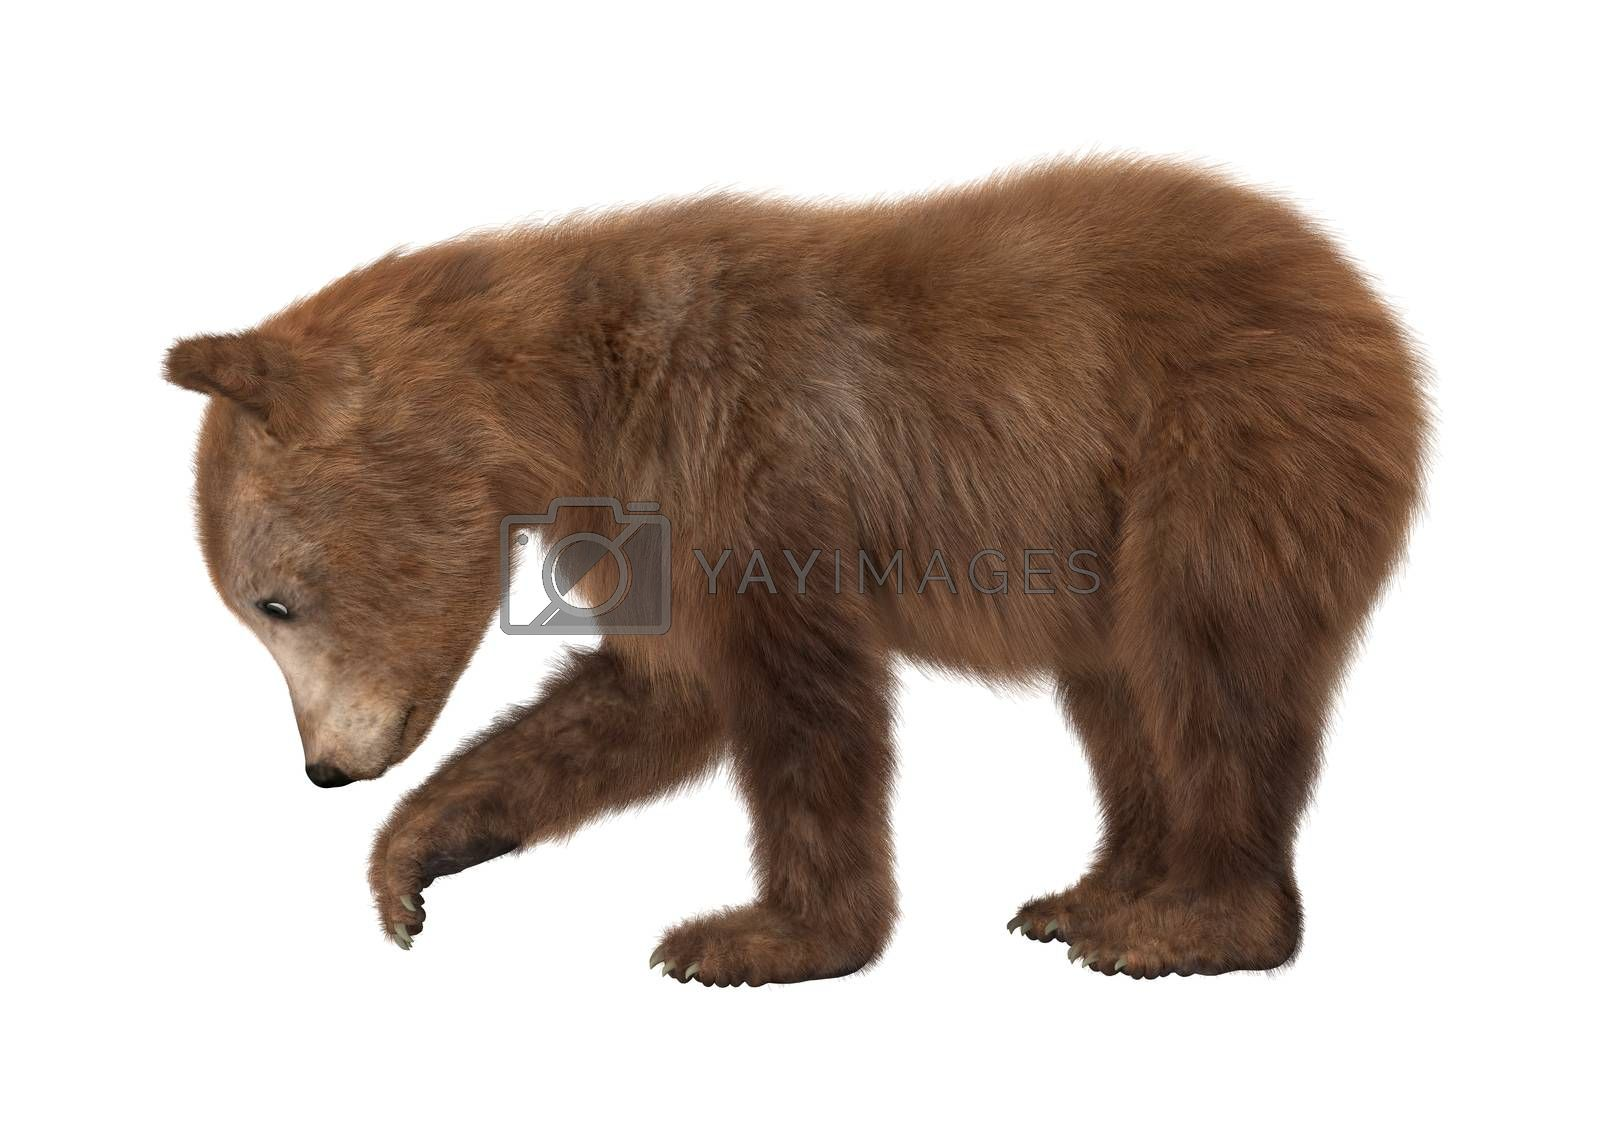 3D digital render of a brown bear cub isolated on white background